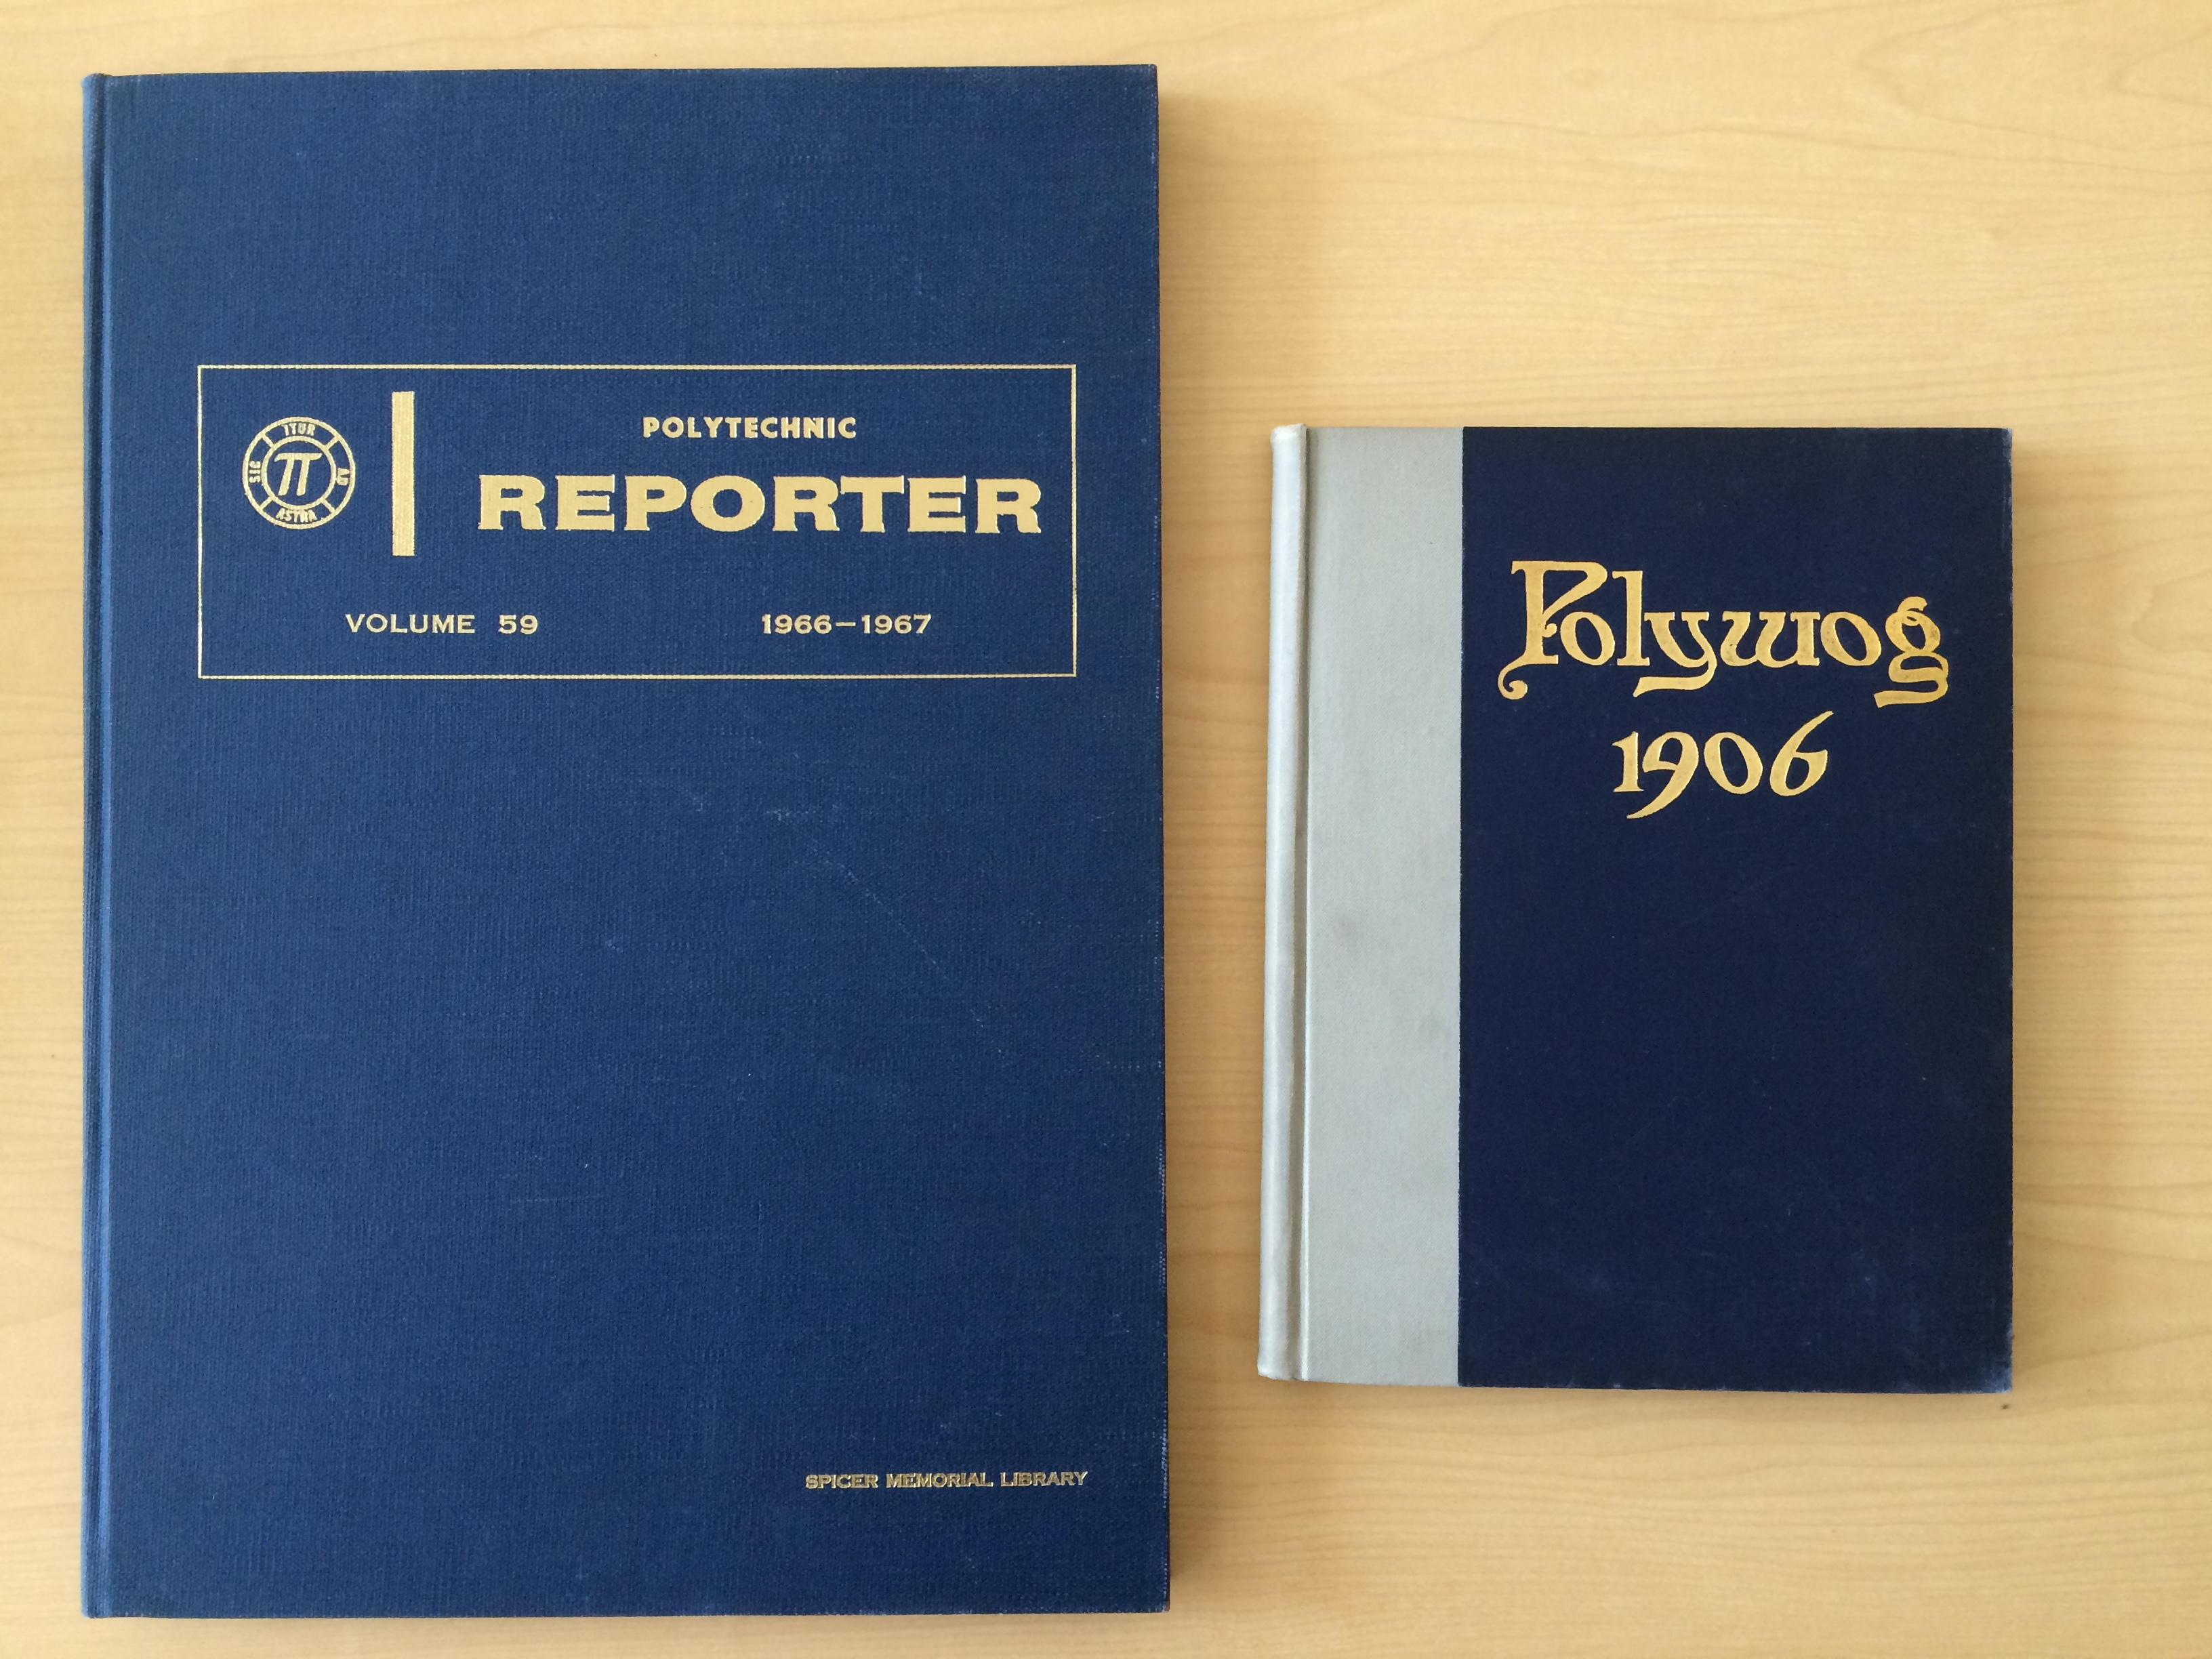 Bound serials including Polytechnic Reporter and the Polywog.